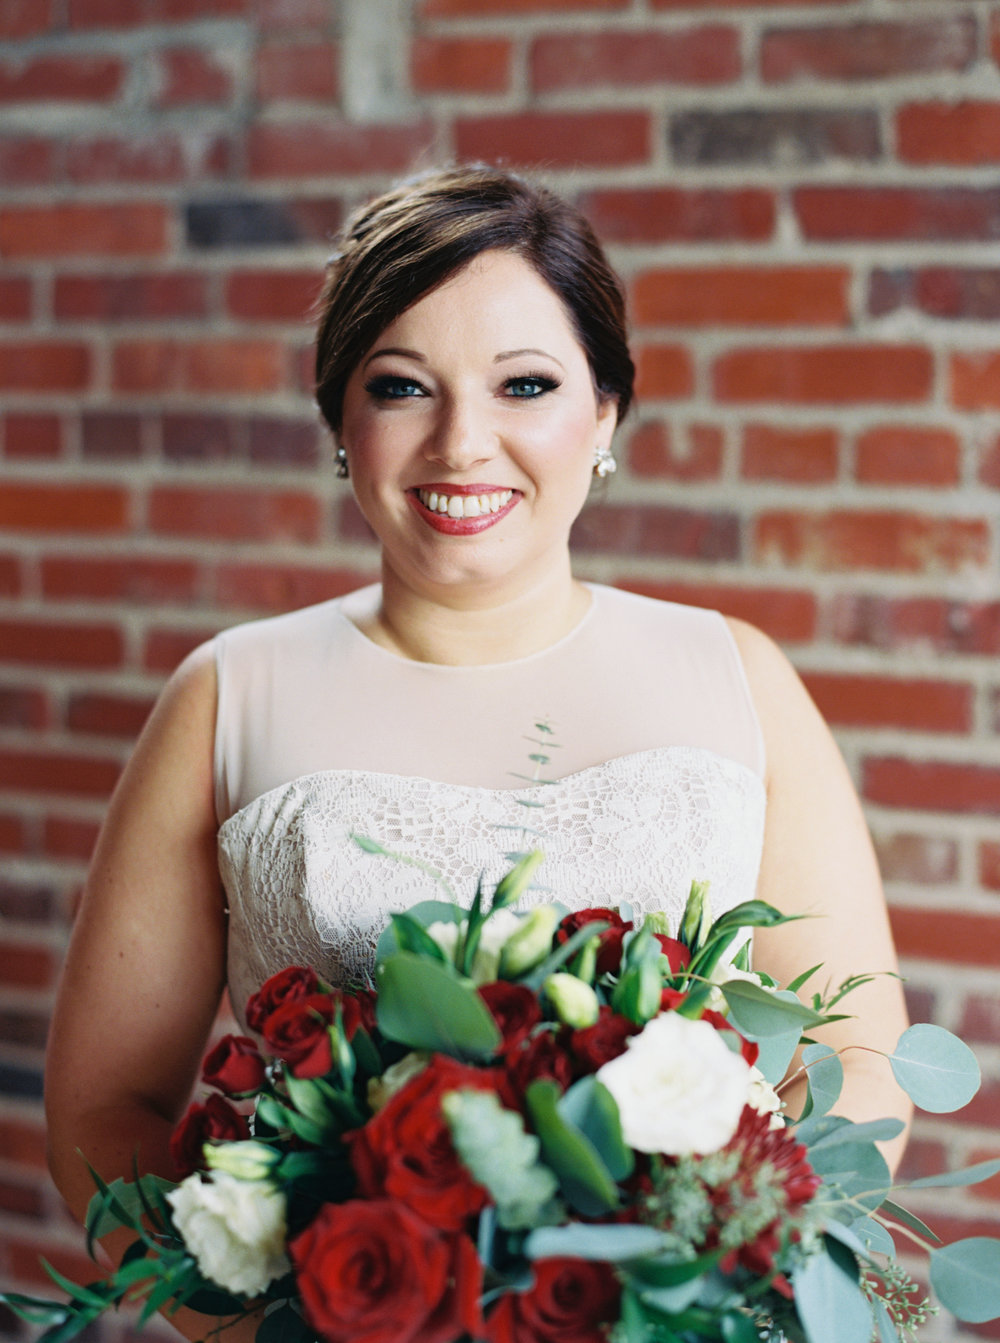 Jessica_Bryan_Wedding_Standard_Knoxville_Abigail_Malone_Photography-163.jpg